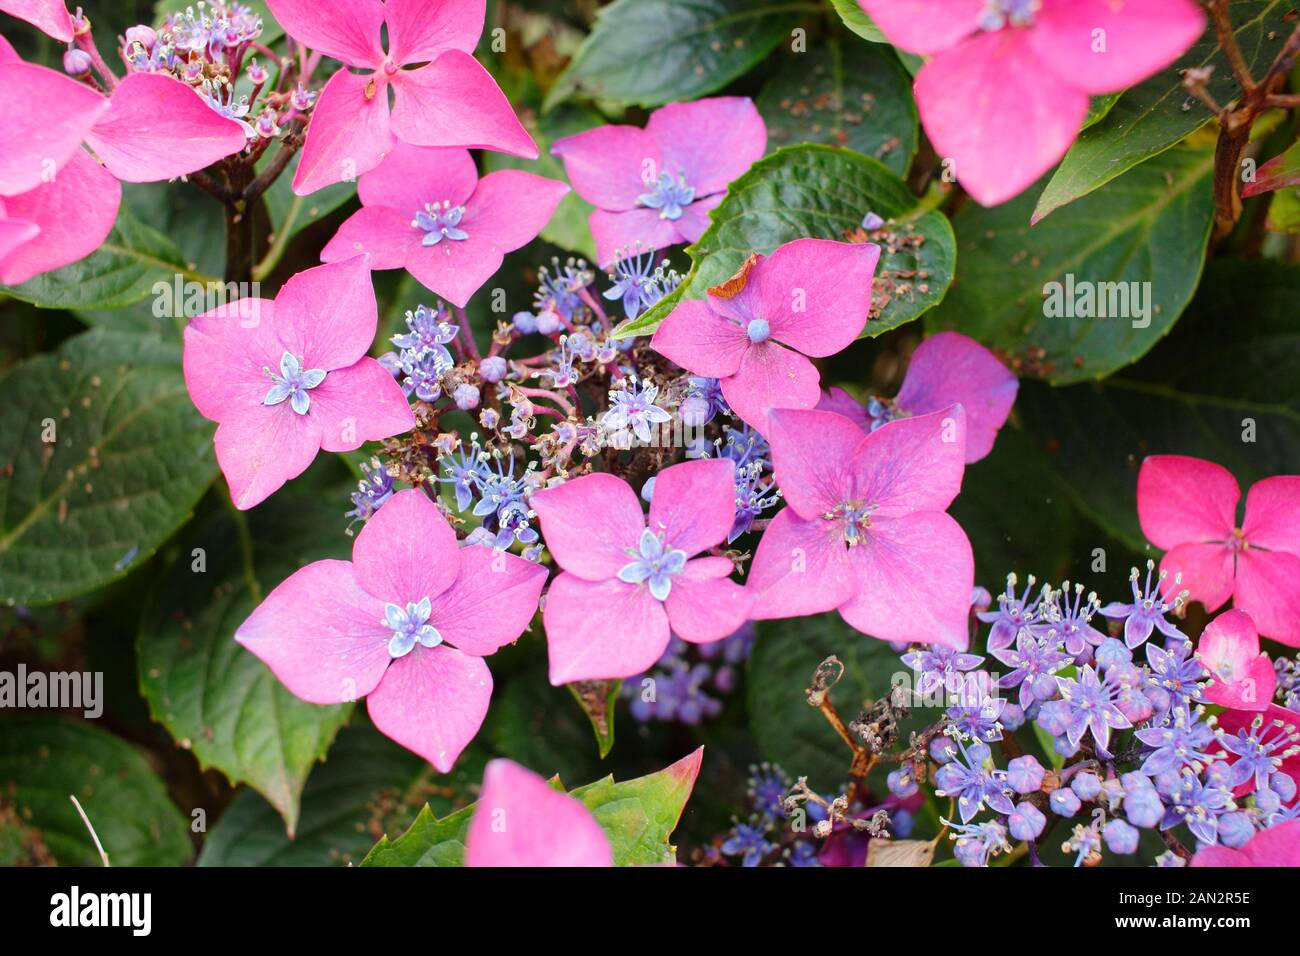 Hydrangea macrophylla 'Kardinal Violet' compact lacecap with deep pink and mauve flowers Stock Photo